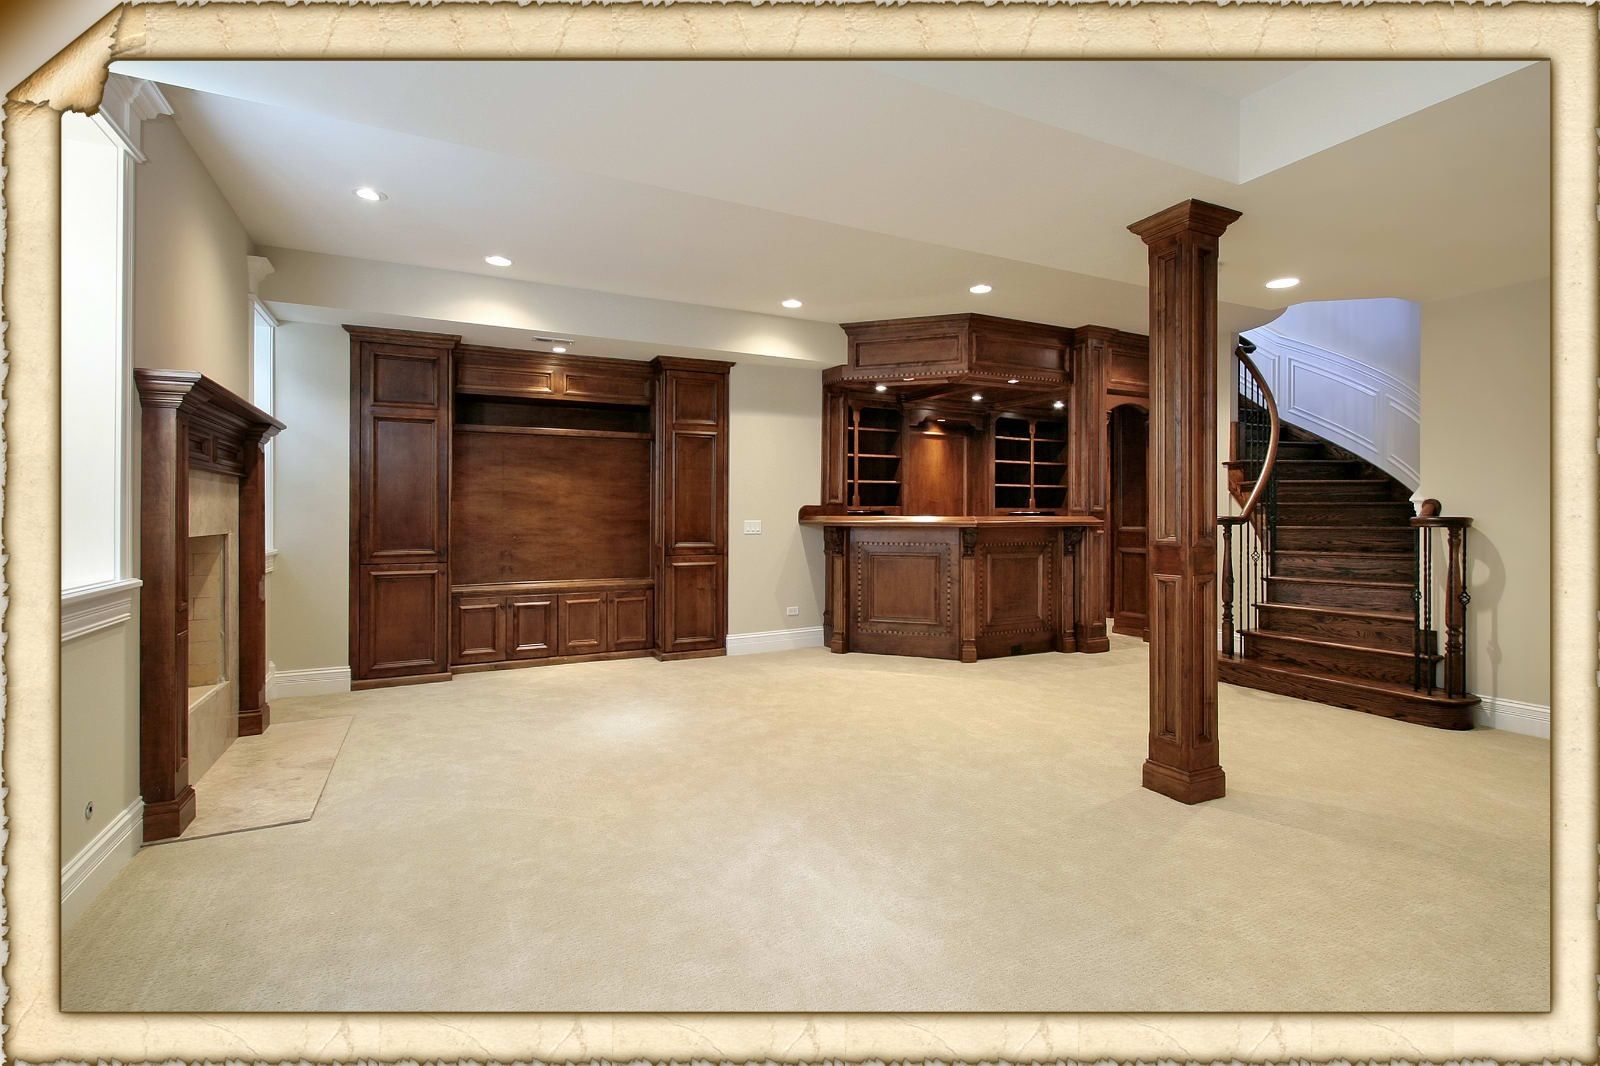 basement ideas |  basement finishing kansas city | basement